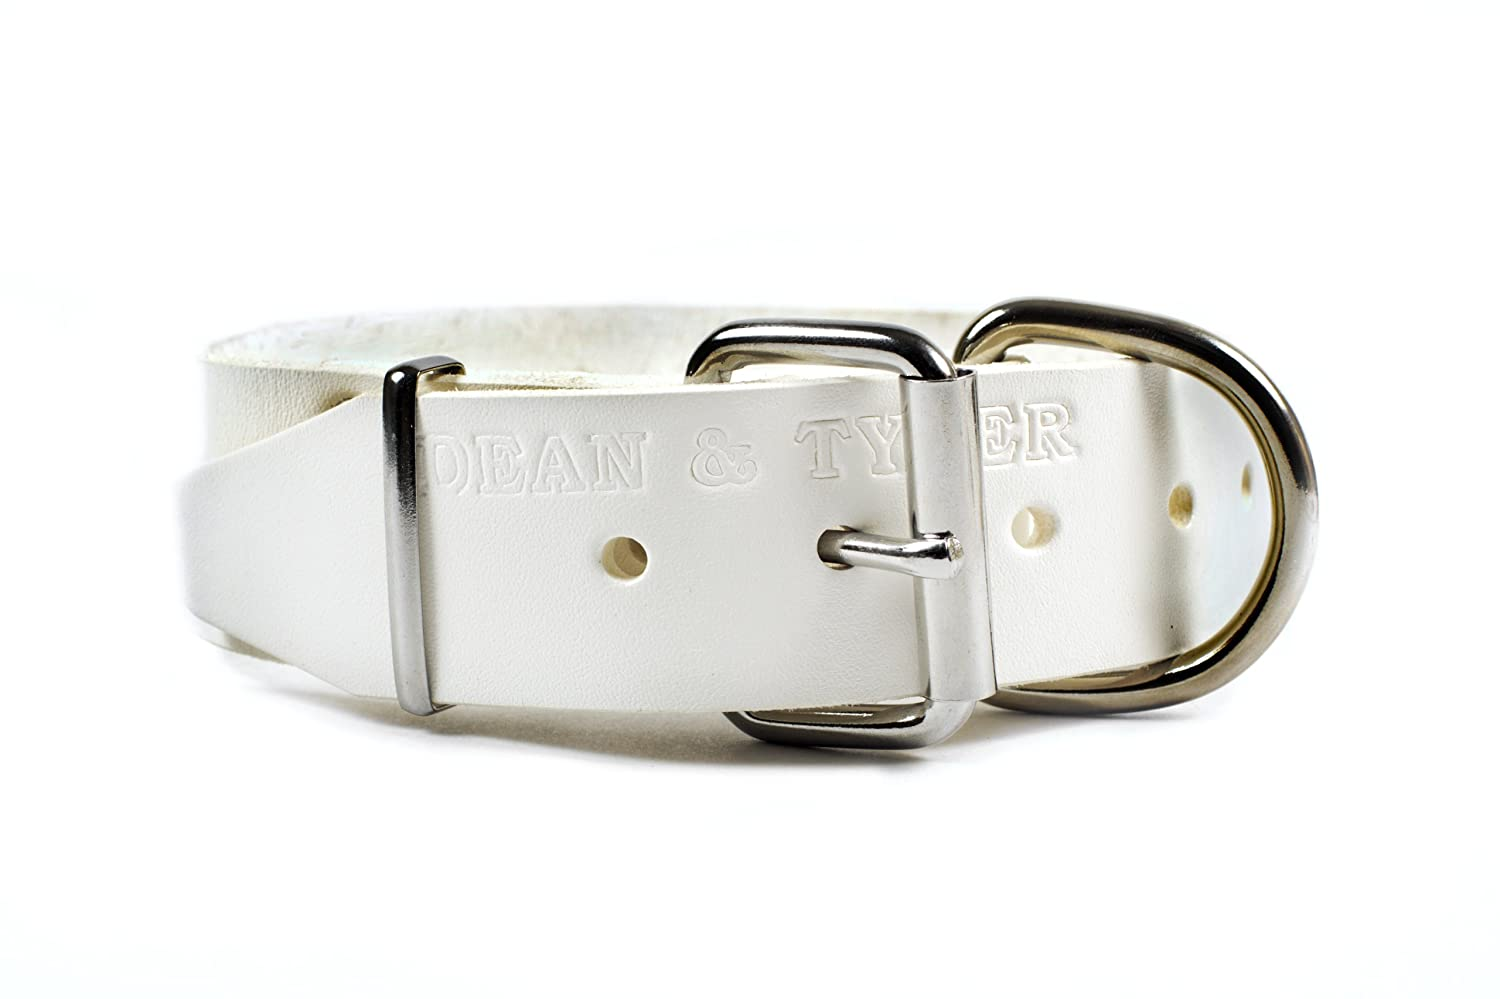 Dean & Tyler B and B Basic Leather Dog Collar with Strong Nickel Hardware, 28 by 1-1 2-Inch, Fits 26 to 30-Inch Neck, White